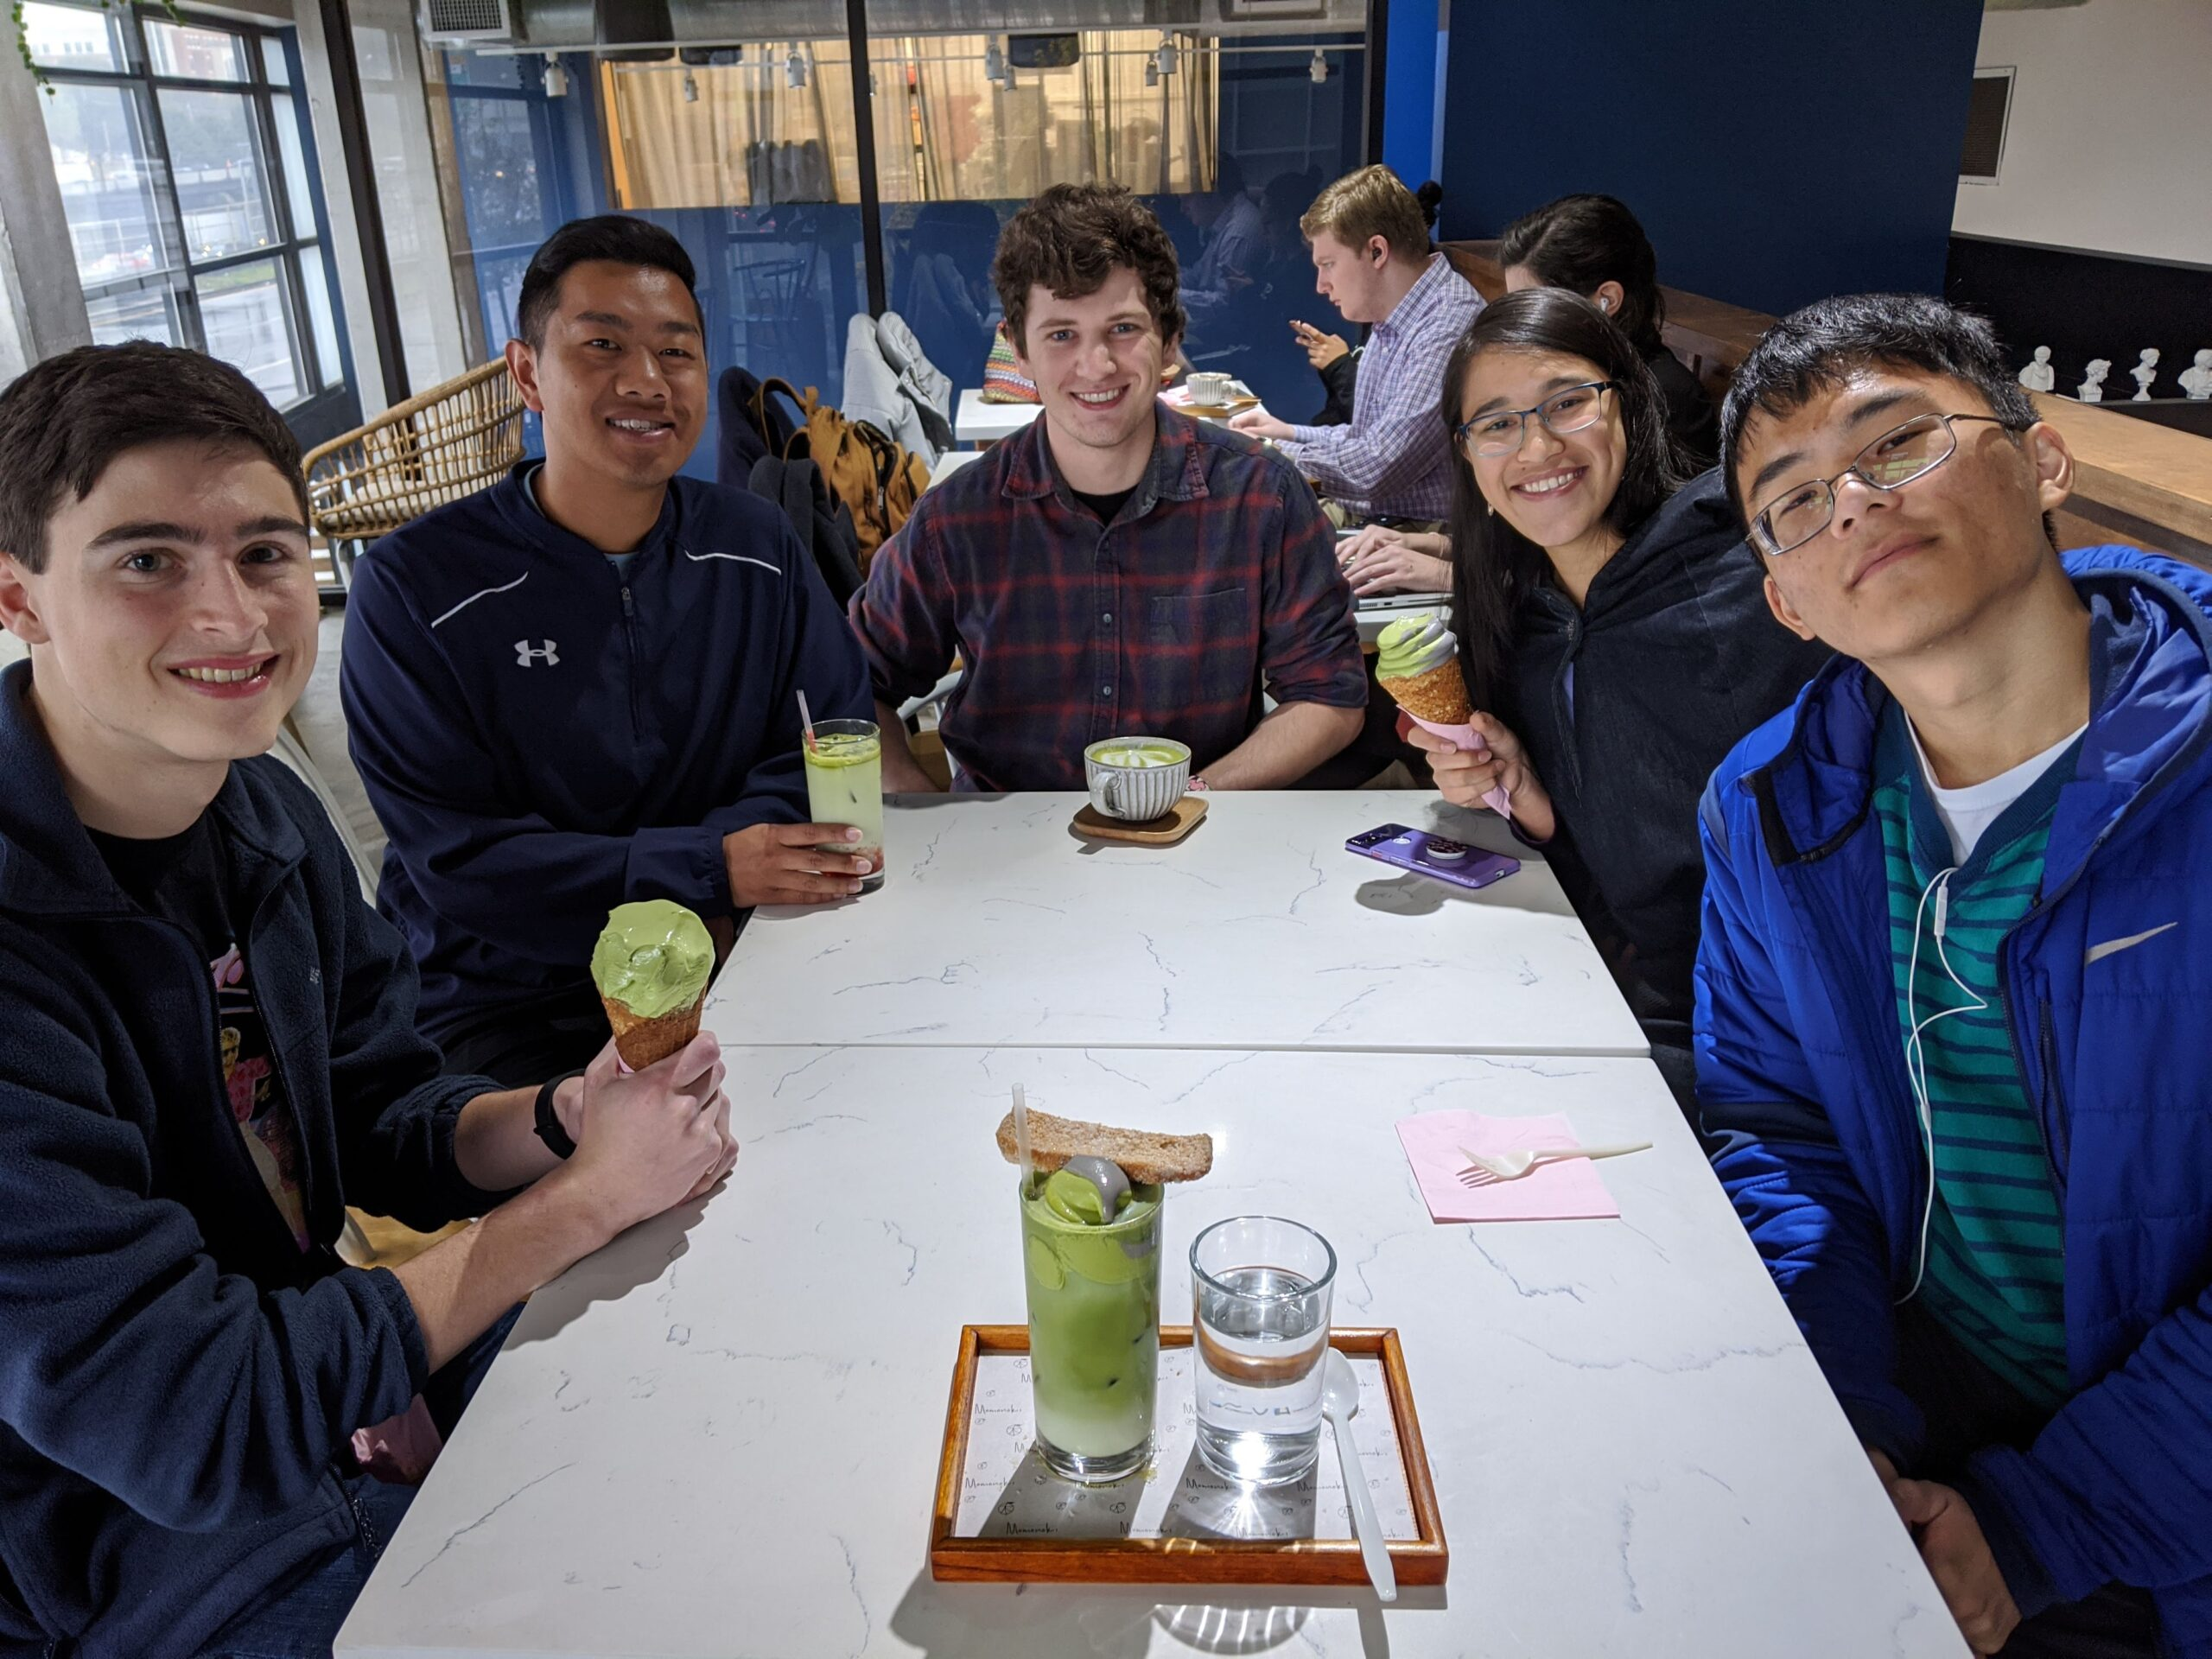 The fab five (L-R: Ryan Power, Alex Yang, Josh Terry, Alayna Panlilio, Jeffrey Zhang) enjoy some ice cream at Momo Cafe. The team members sit at a rectangular table, holding ice cream and smiling at the camera.